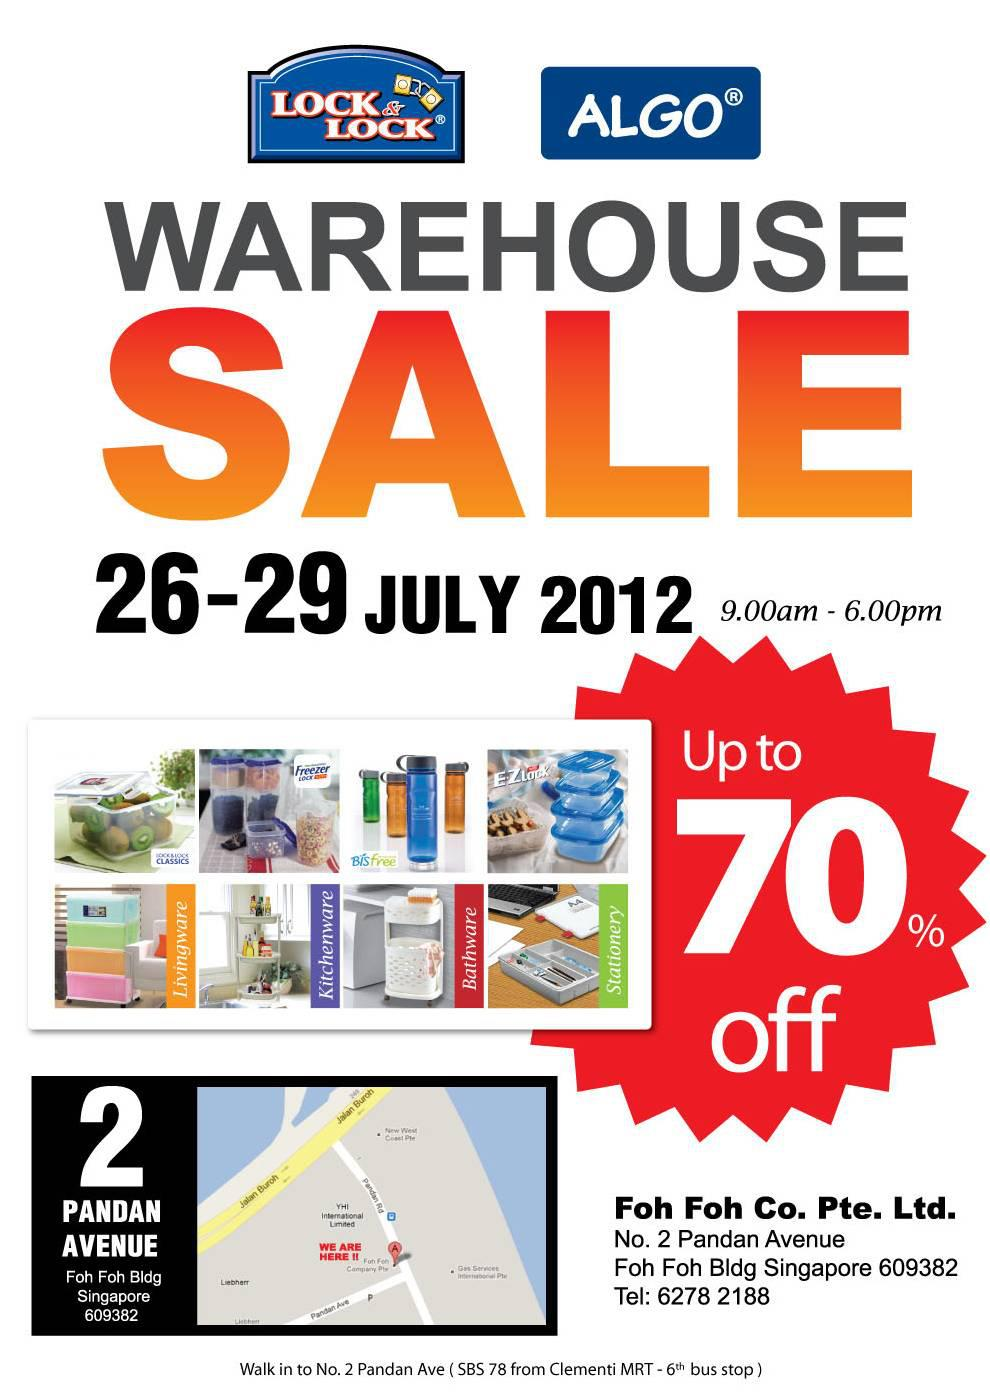 Lock & Lock and ALGO Warehouse Sale